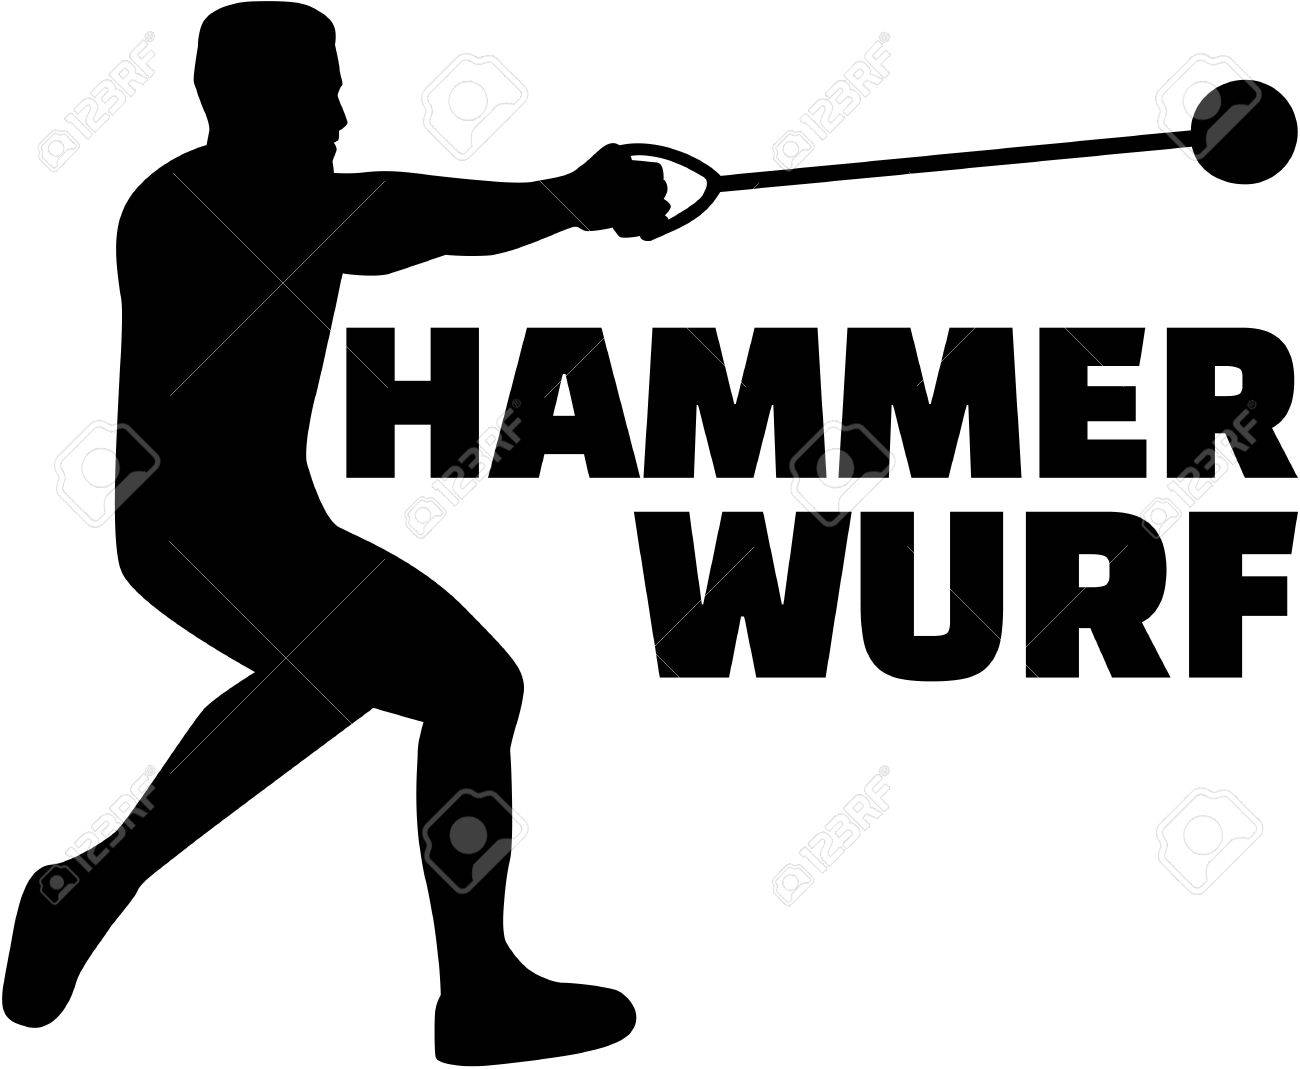 Hammer Throw Silhouette With German Word Royalty Free Cliparts ...